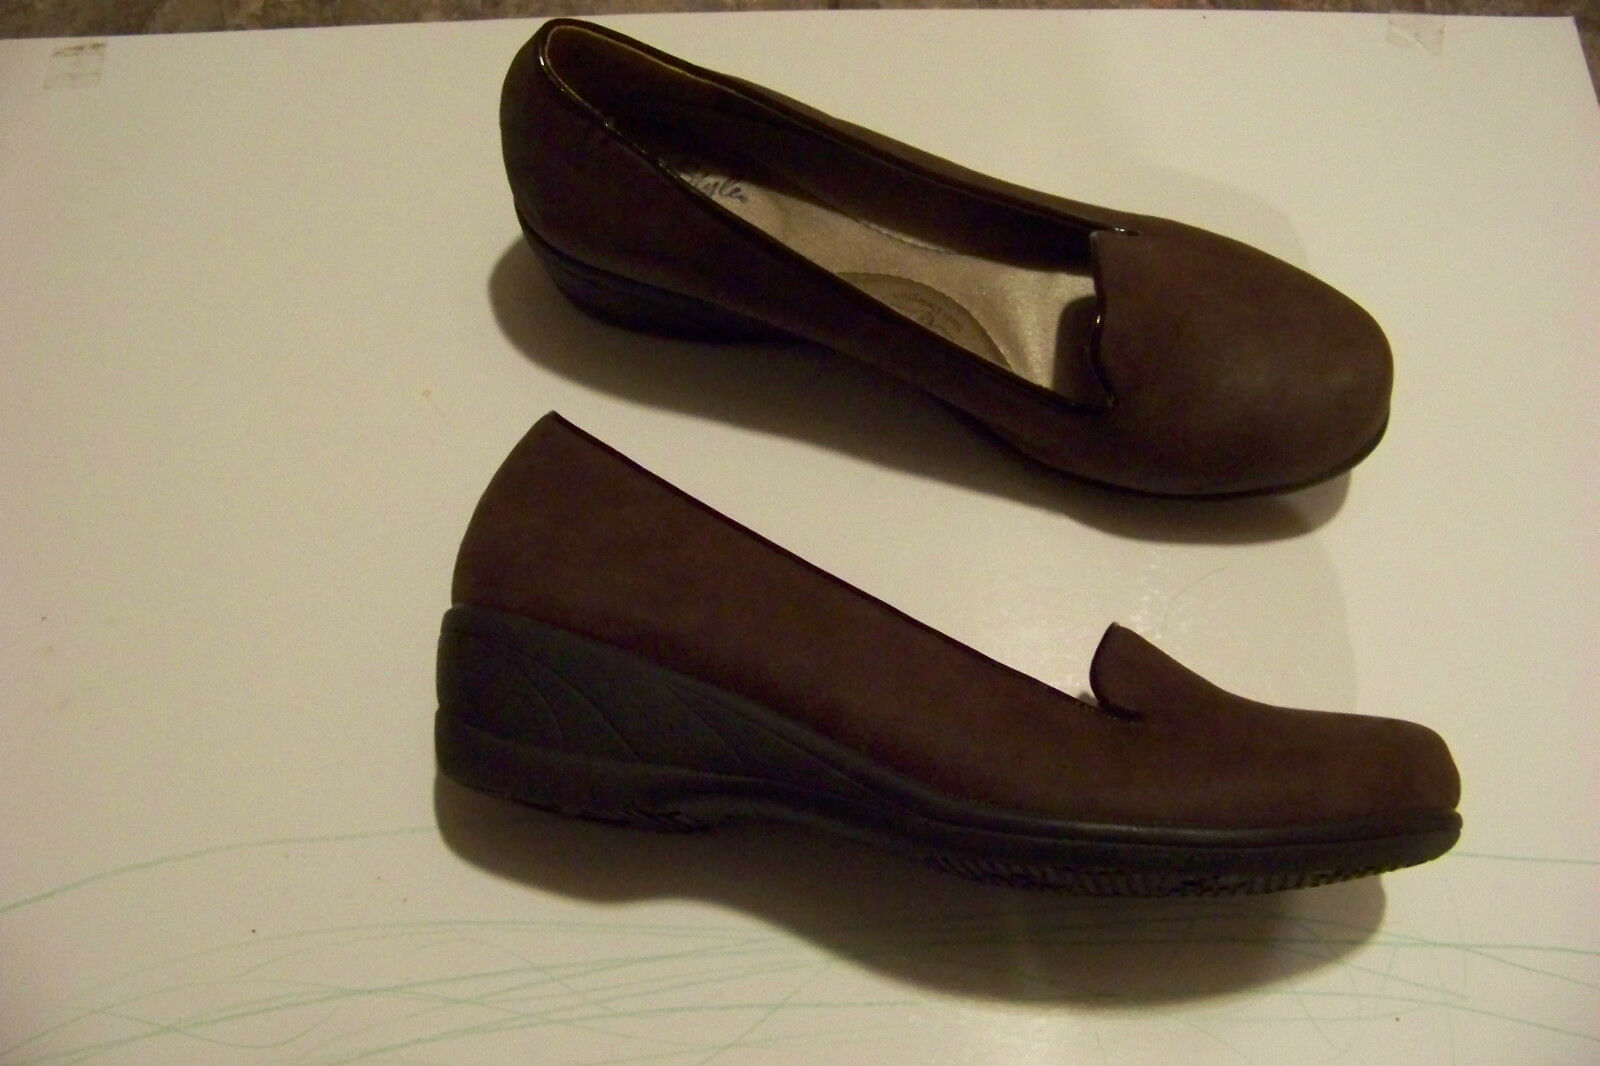 womens soft style brown heels fabric slip on wedge heels brown shoes size 8 0fac35